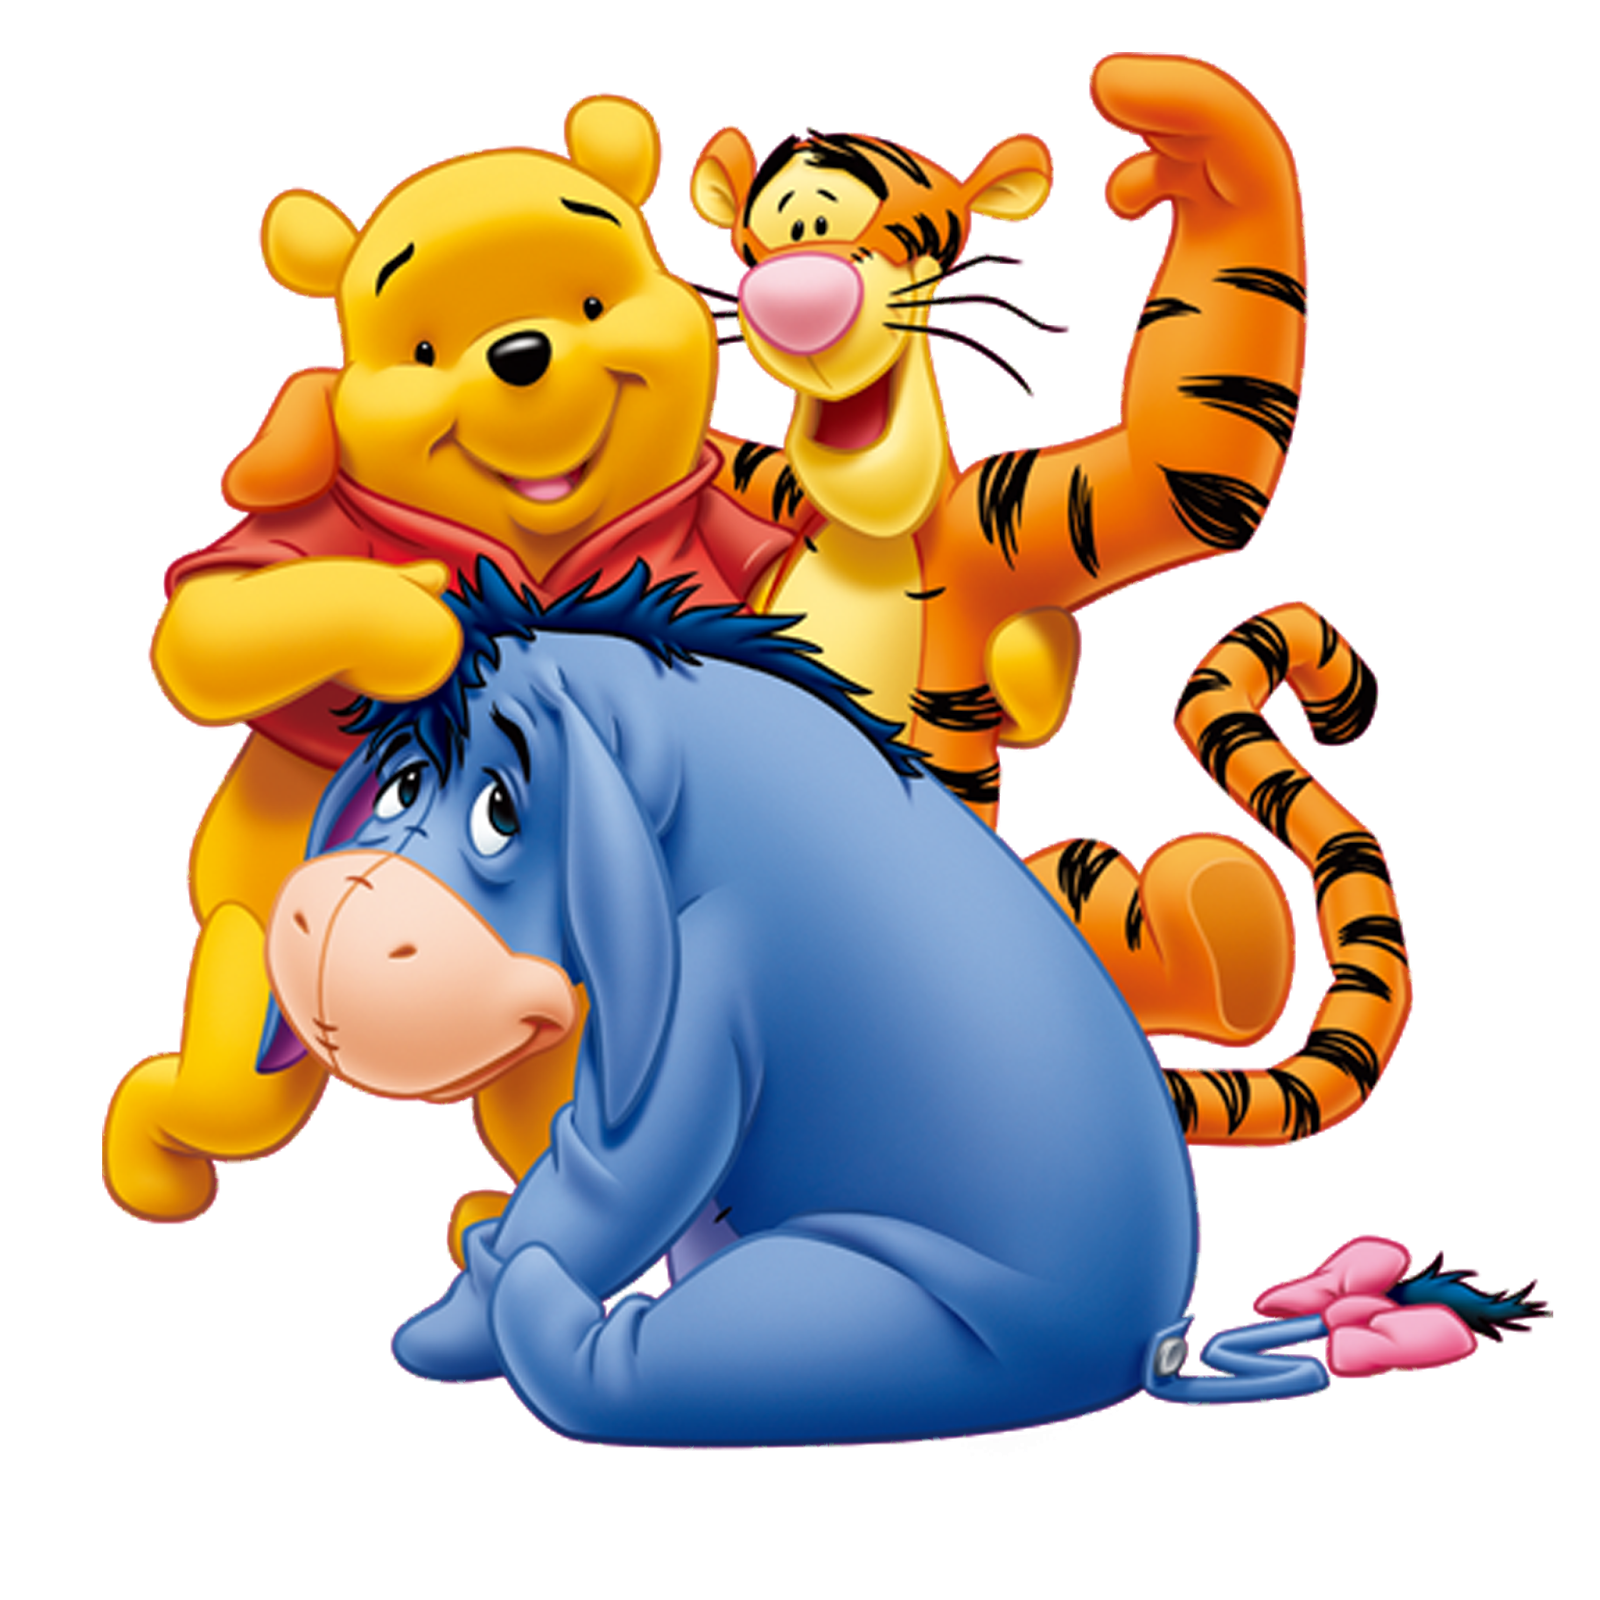 Winnie The Pooh Characters Clipart at GetDrawings | Free ...